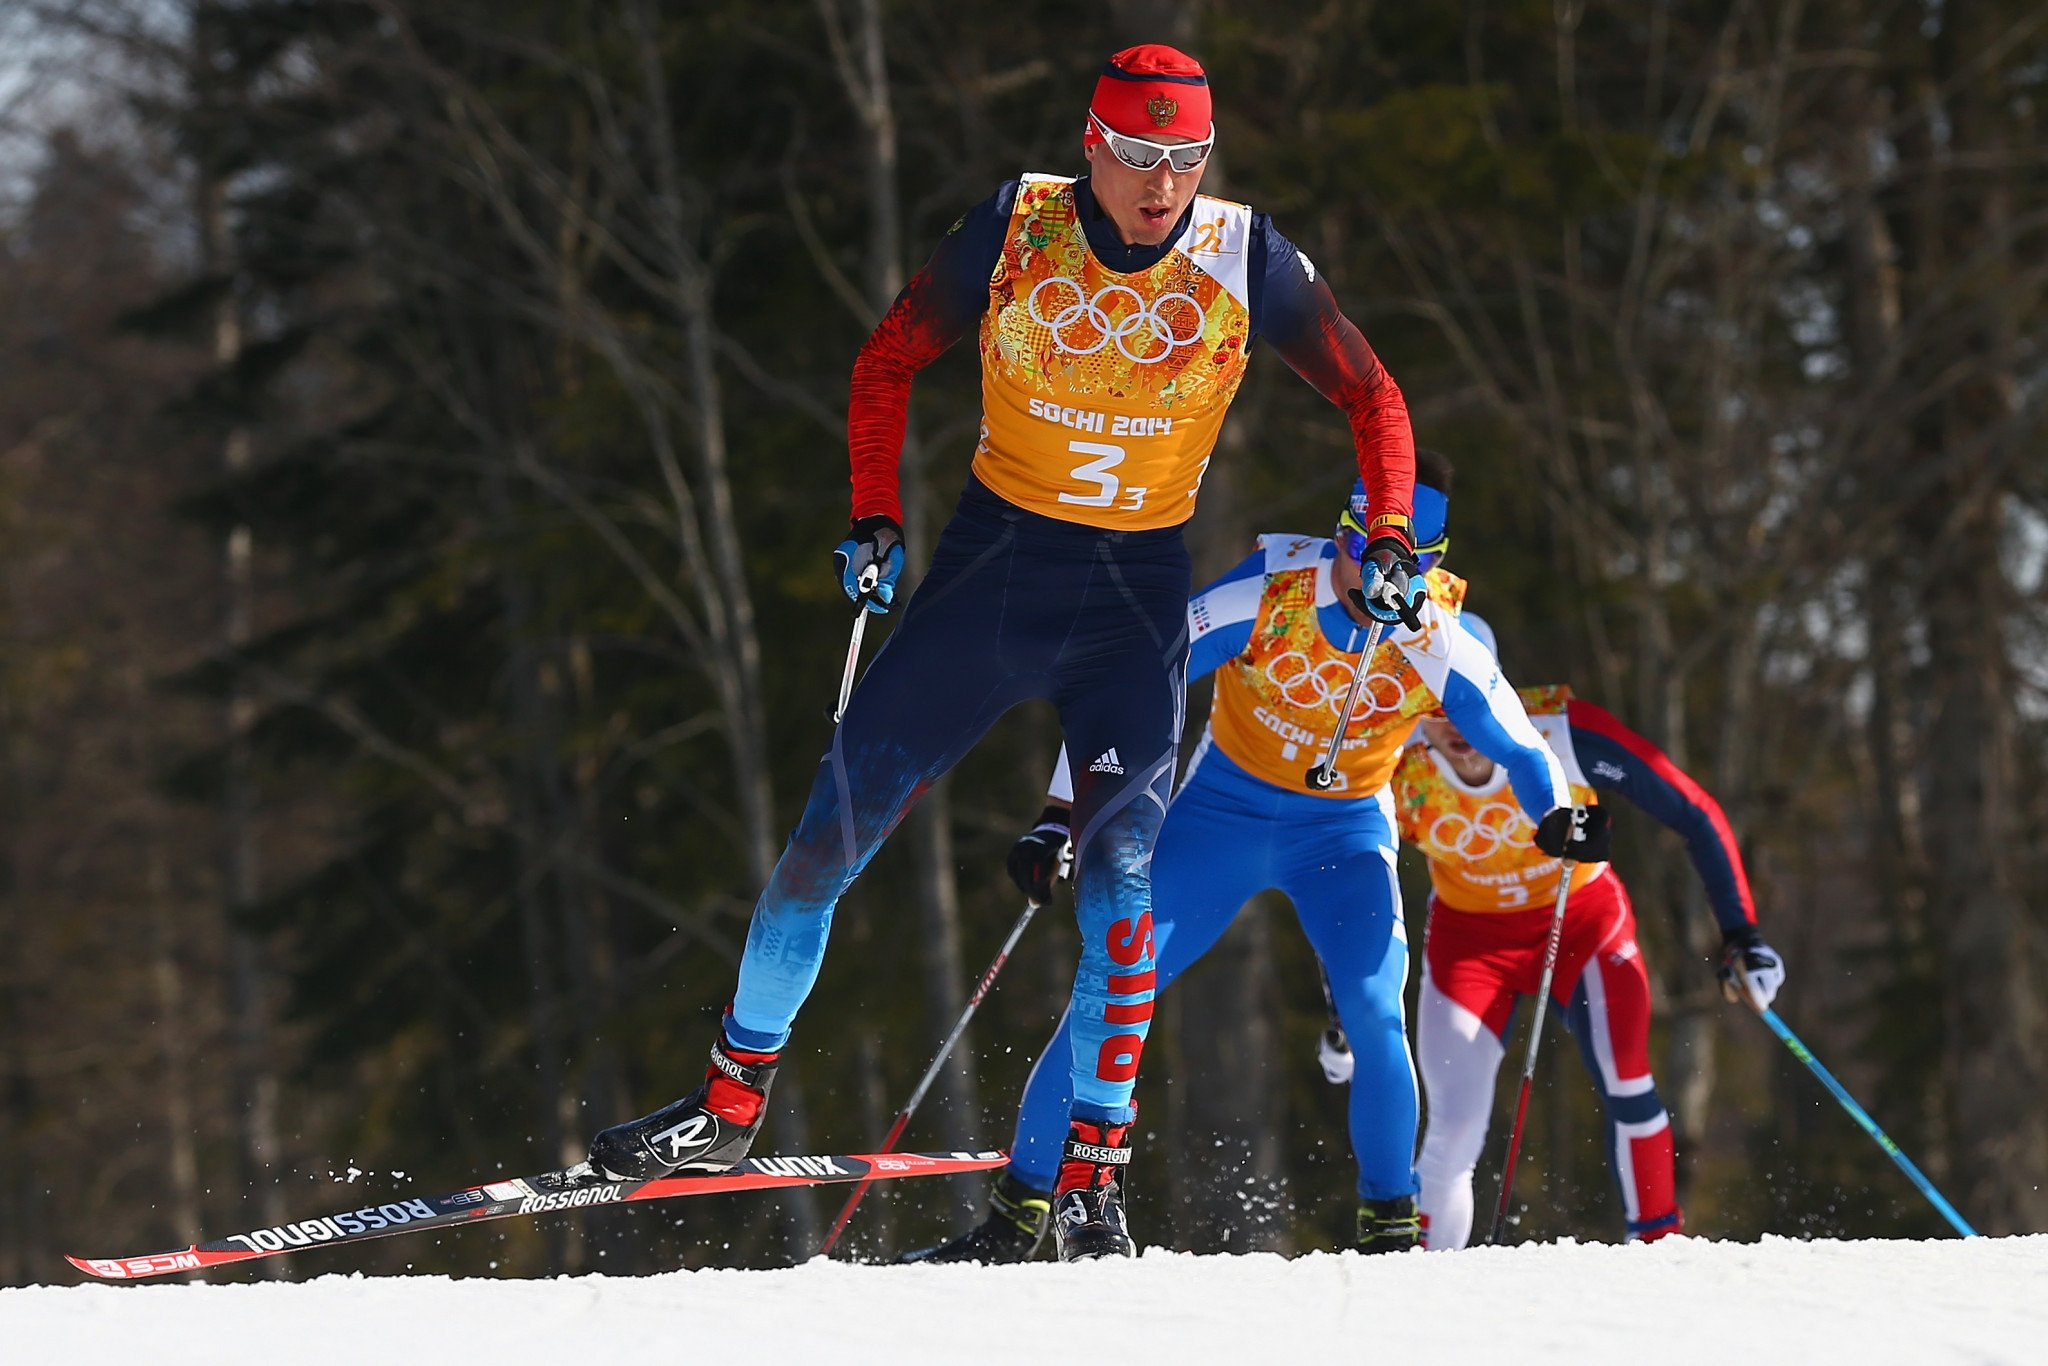 Russian cross-country skier Alexander Legkov has been disqualified and stripped of the gold medal he won at Sochi 2014 after being found guilty of being involved in a scheme where drugs samples were tampered with ©Getty Images